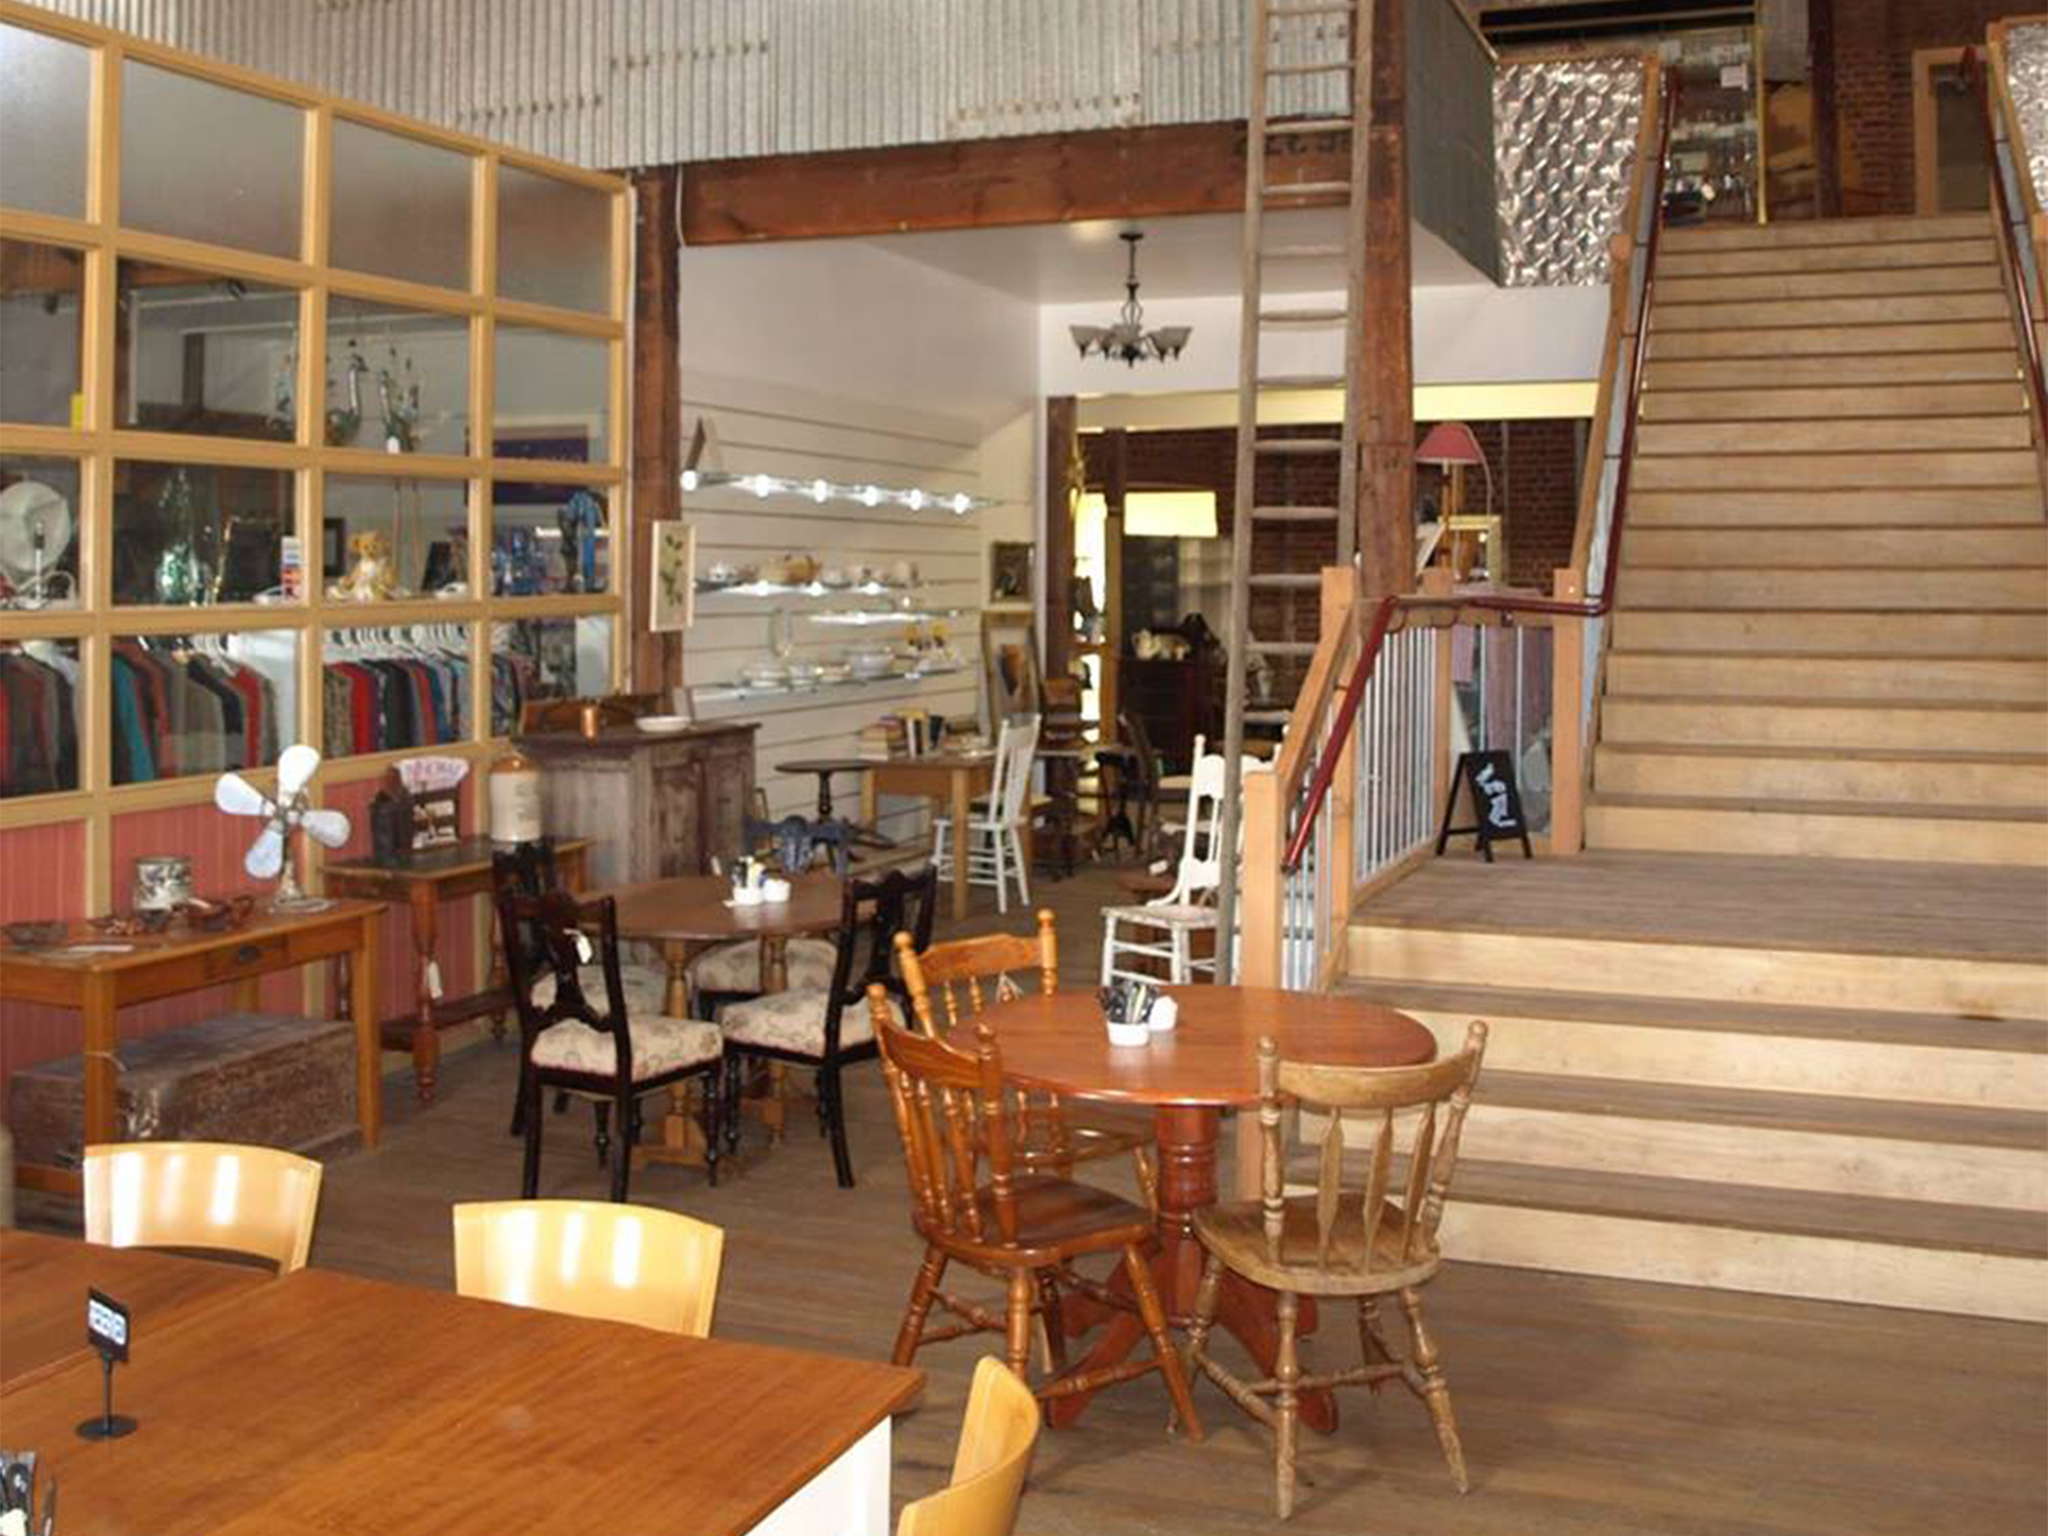 The quaint interiors of an antique store and cafe